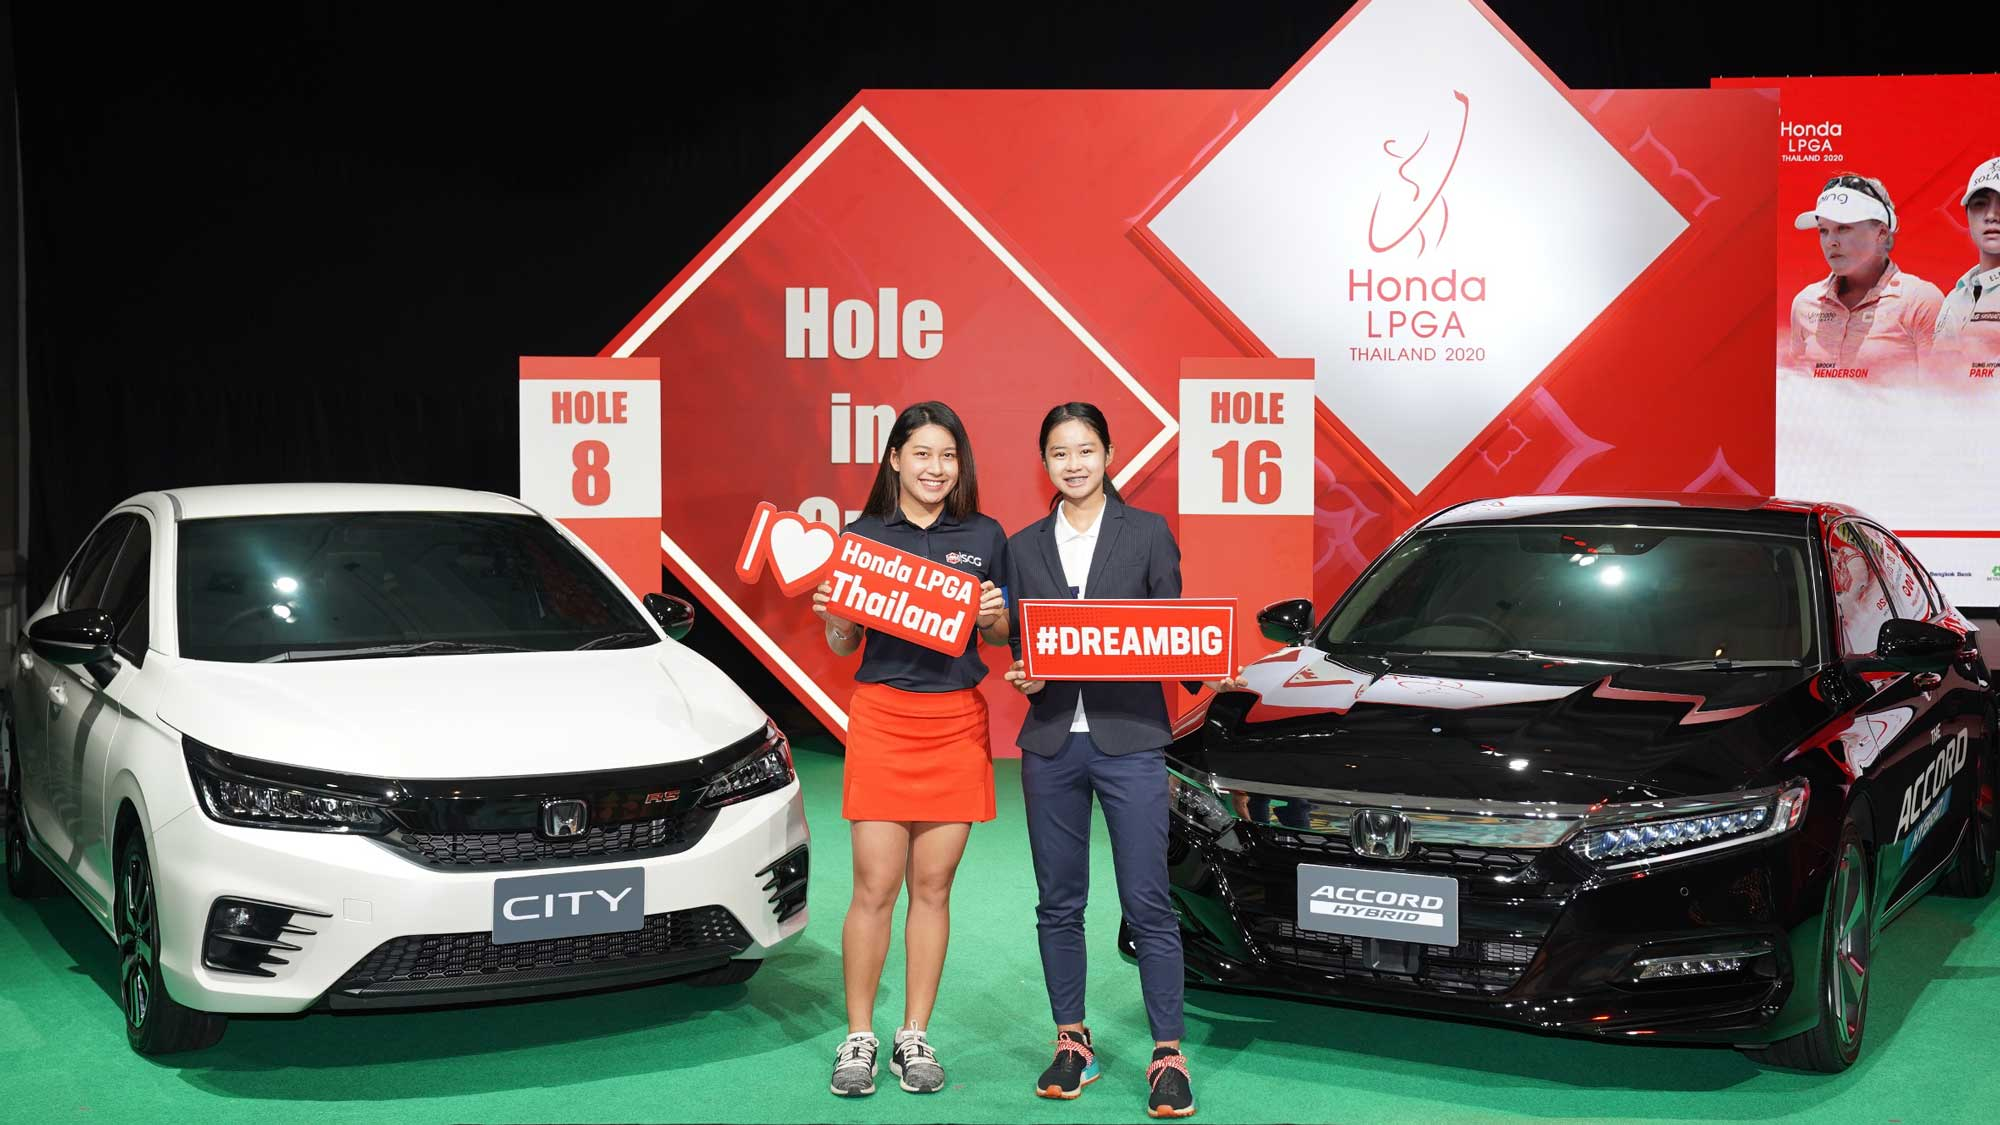 Two hole - in - one prizes will be up for grabs at the Honda LPGA Thailand | LPGA | Ladies Professional Golf Association